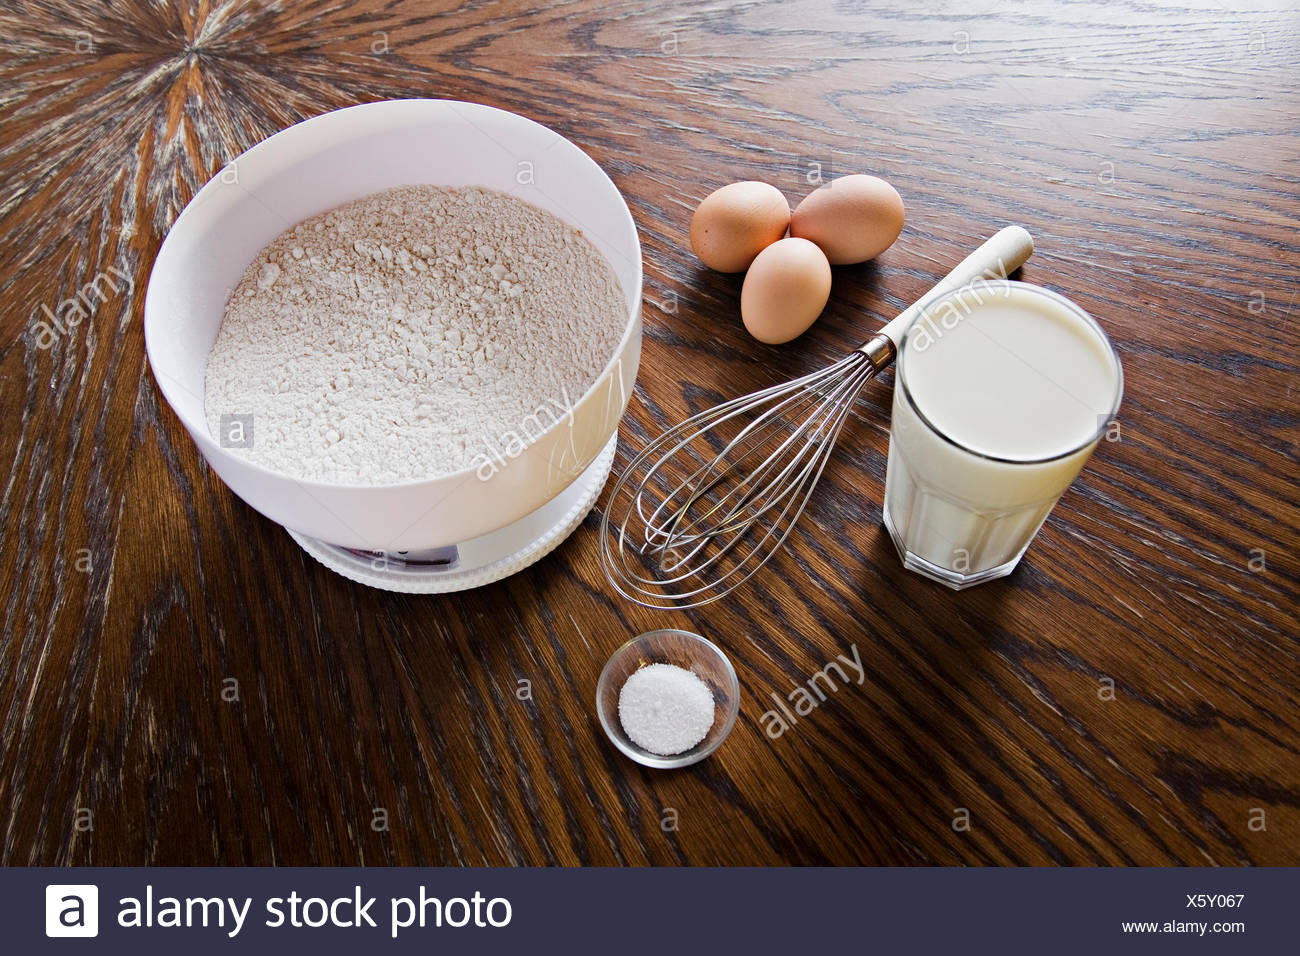 ingredients for pancakes on a table, Austria - Stock Image